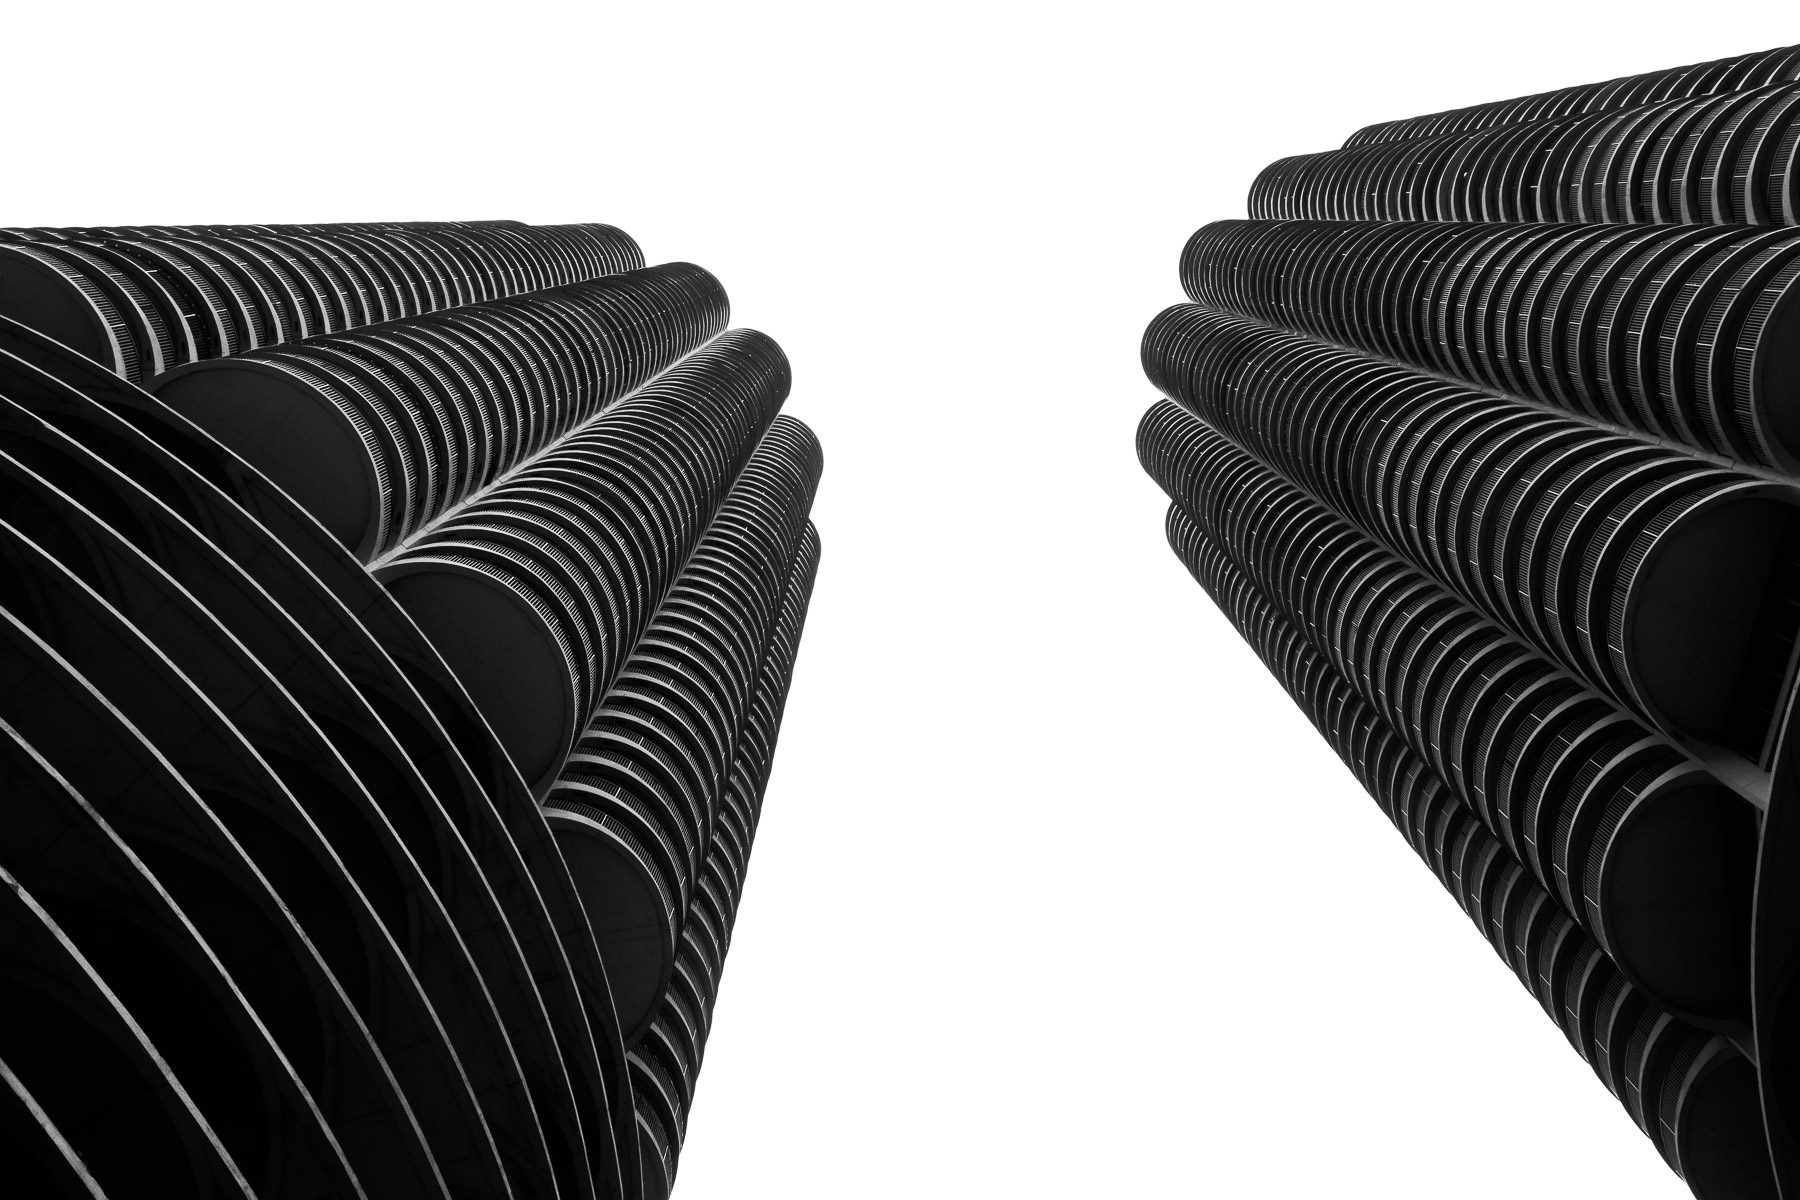 Chicago's Marina City towers resemble giant corncobs rising into the Illinois sky.